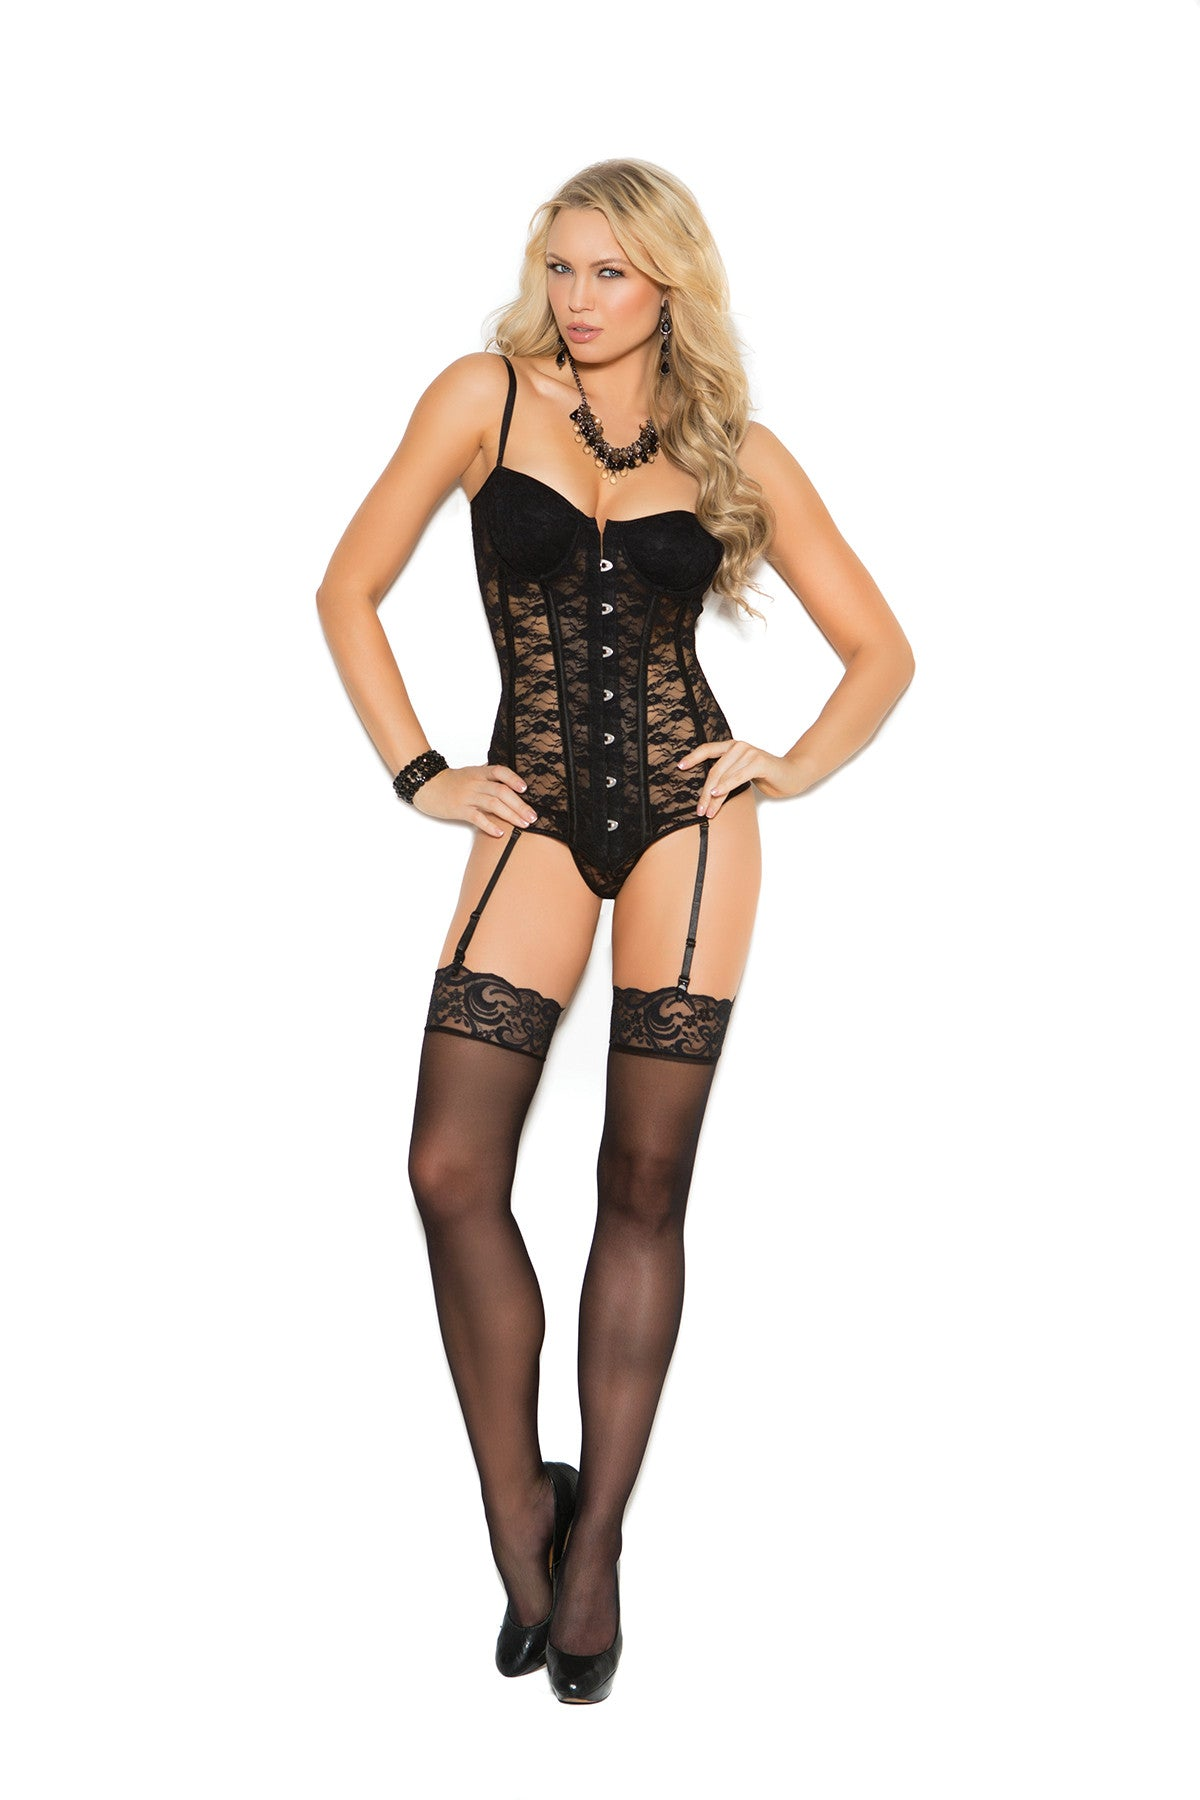 Lace bustier with underwire cups